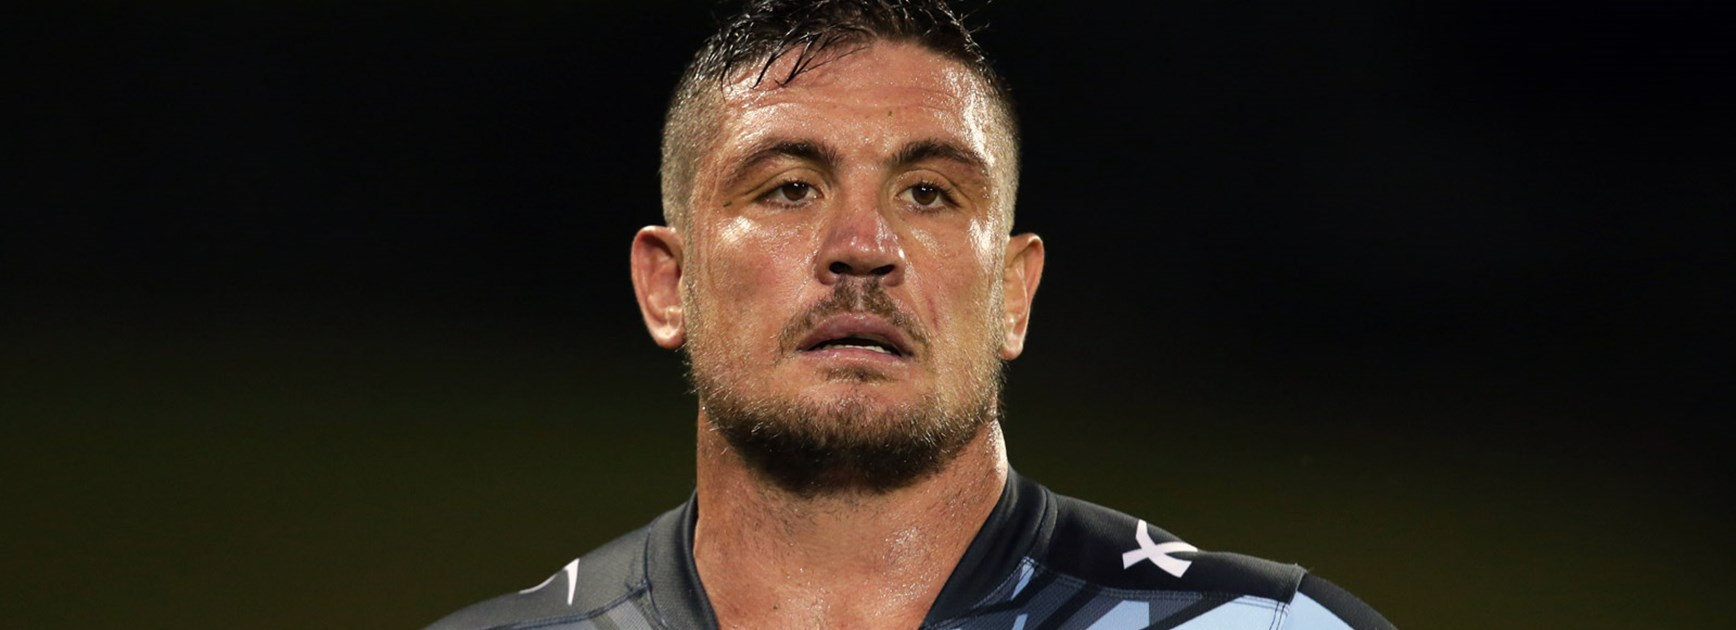 Sharks prop Chris Heighington was one of three players charged so far in Round 1.